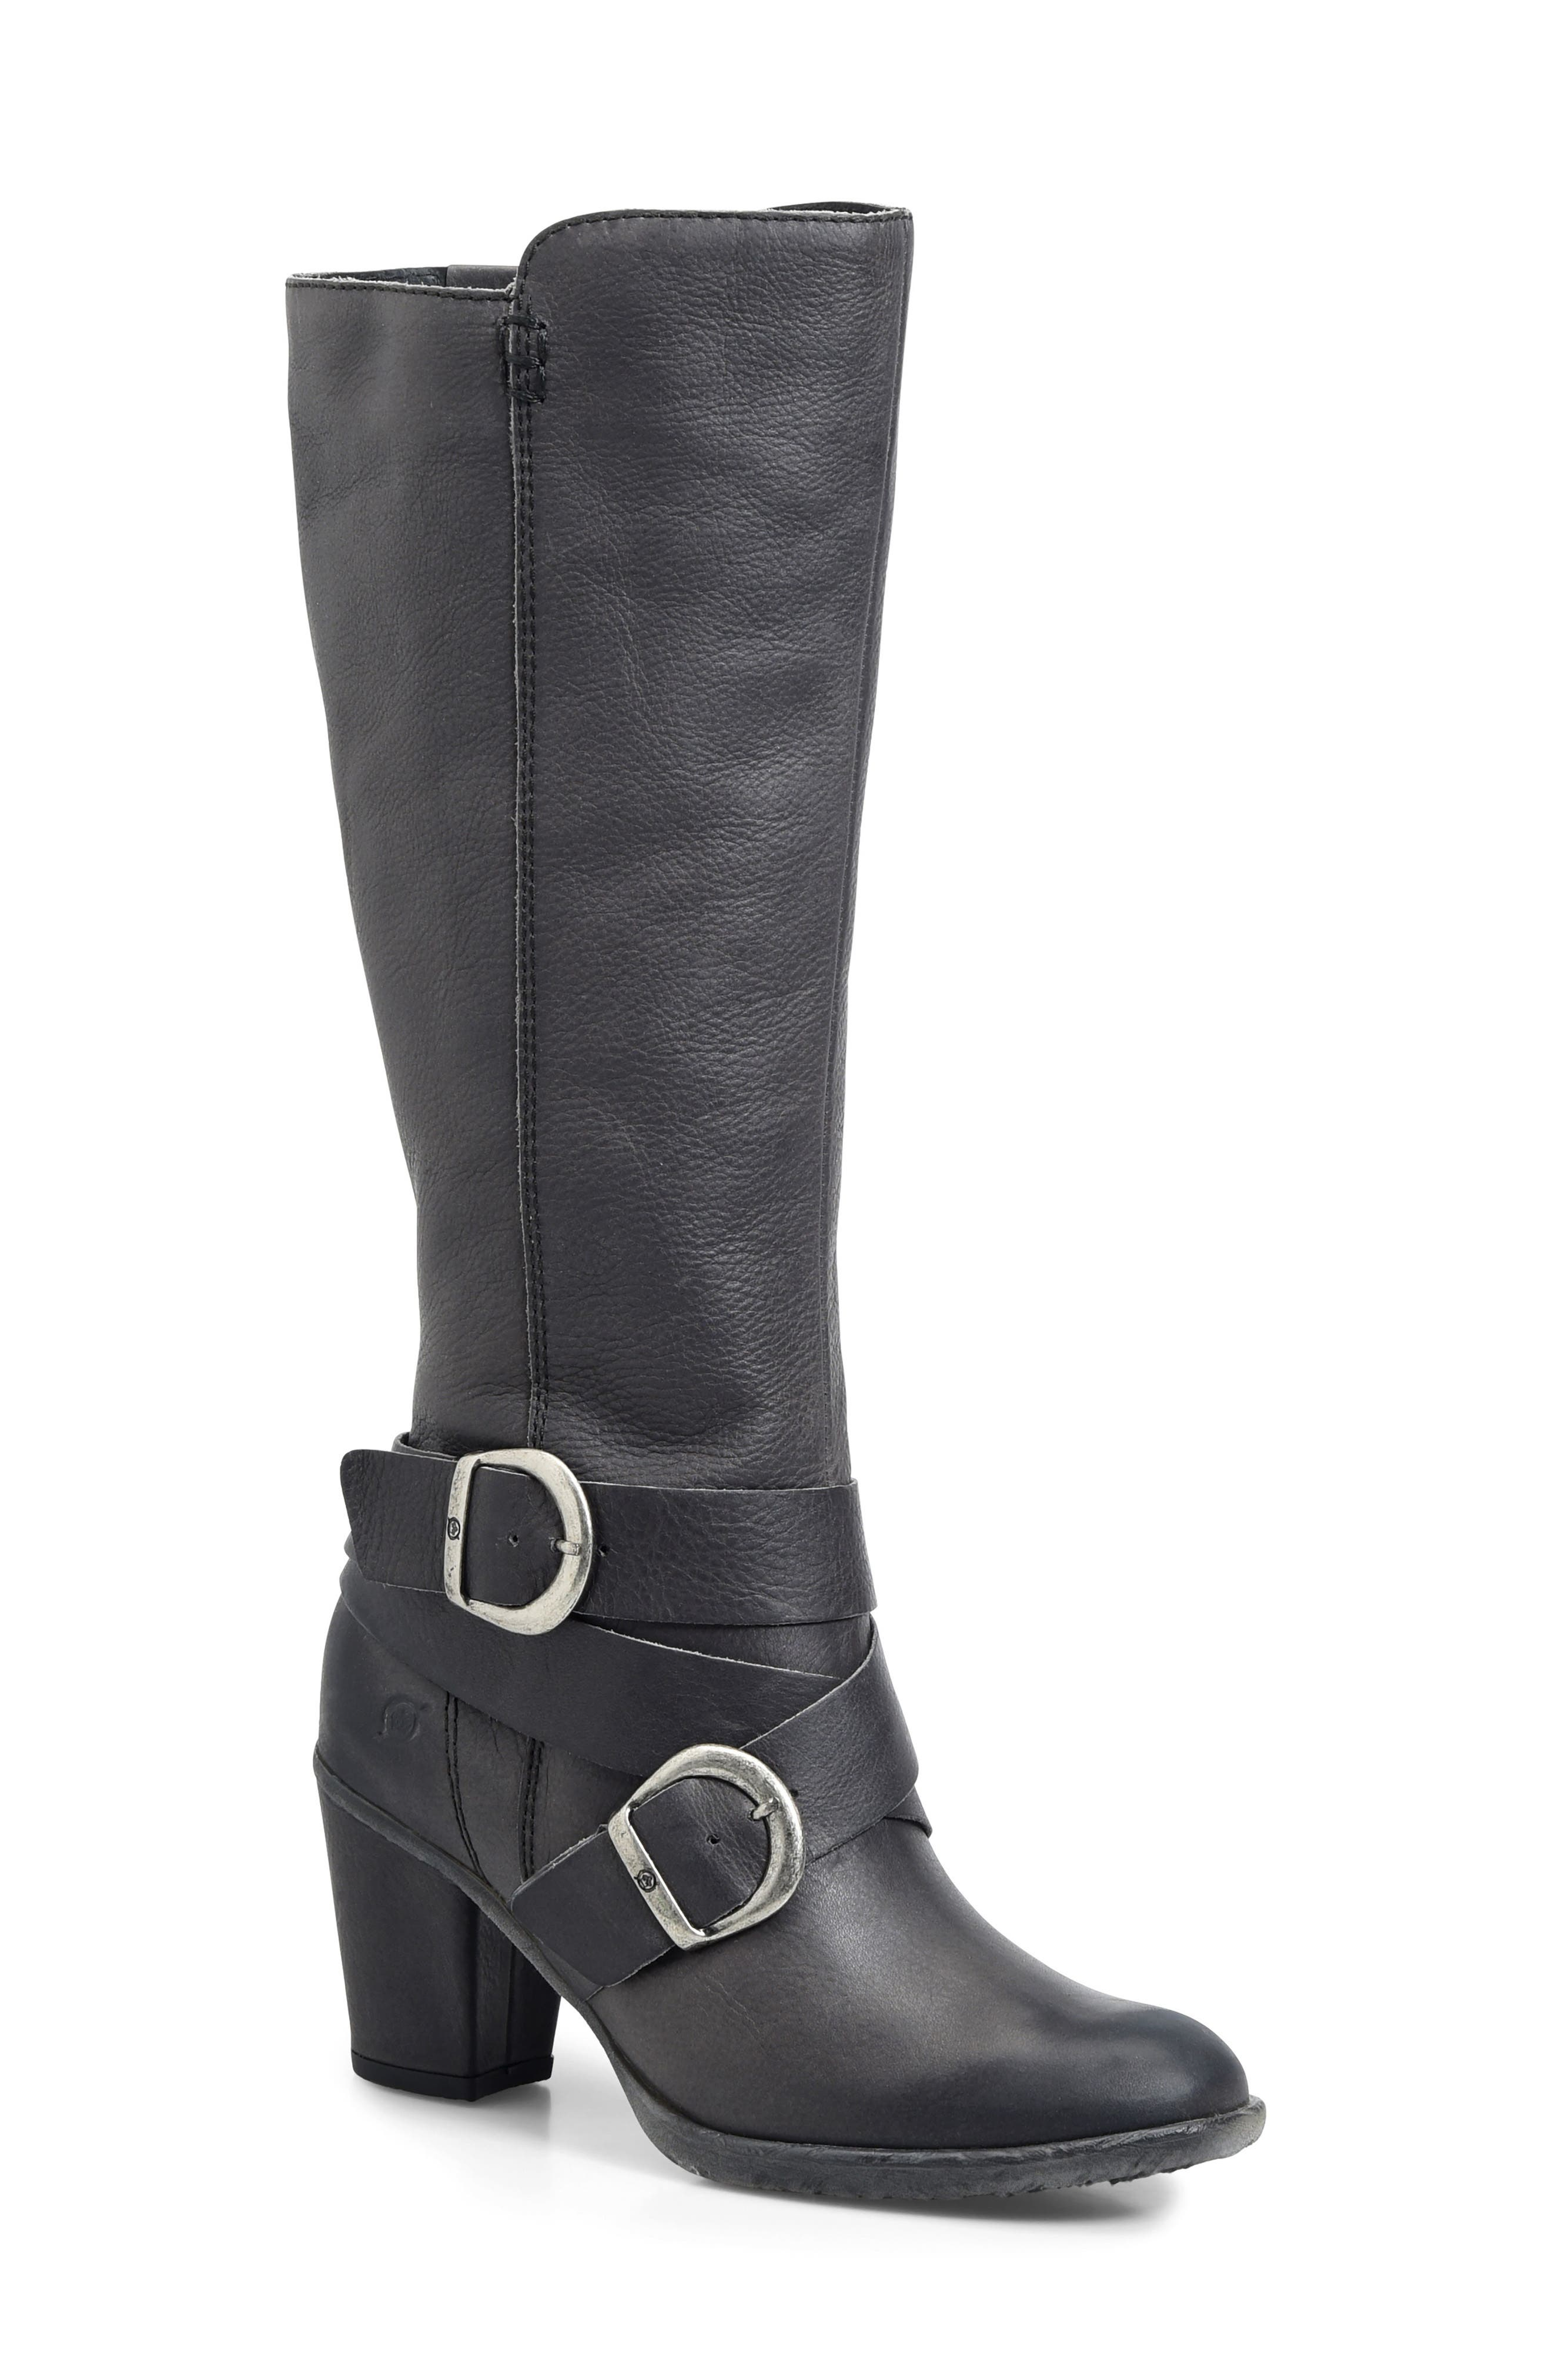 Cresent Knee High Boot,                             Main thumbnail 1, color,                             Dark Grey Leather